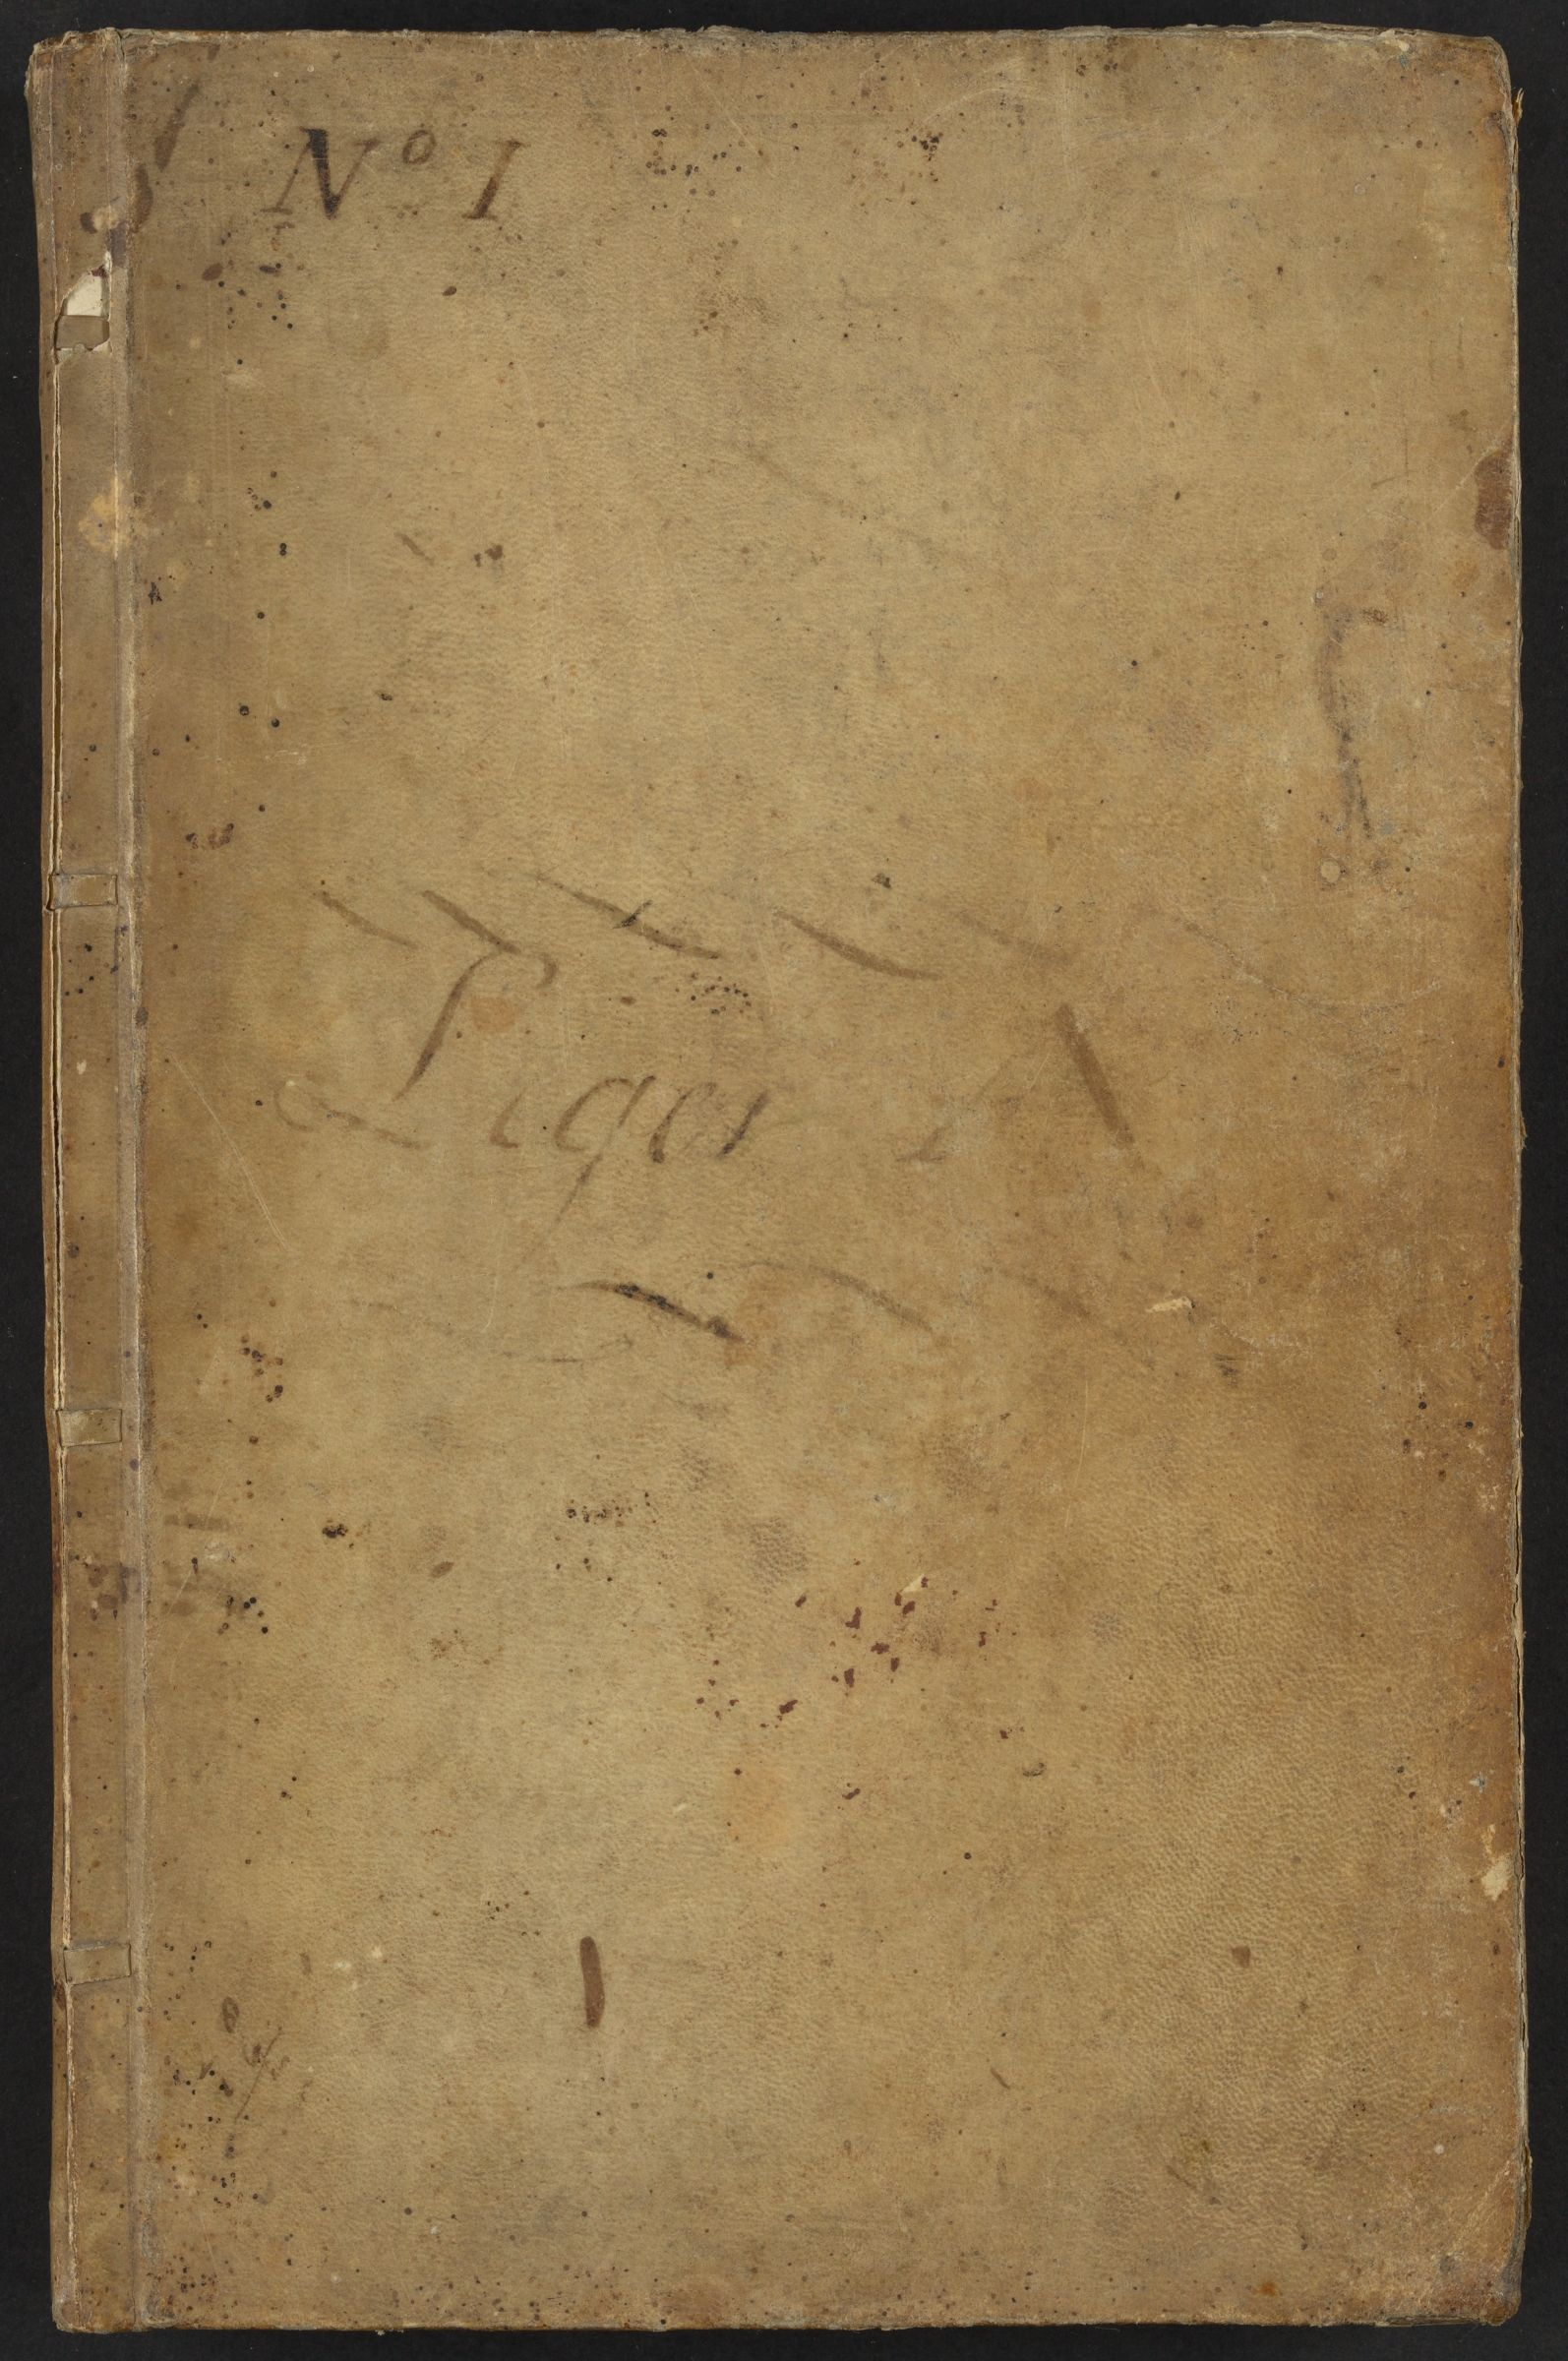 Account book of Daniel Brigham, 1781-1798 (inclusive)